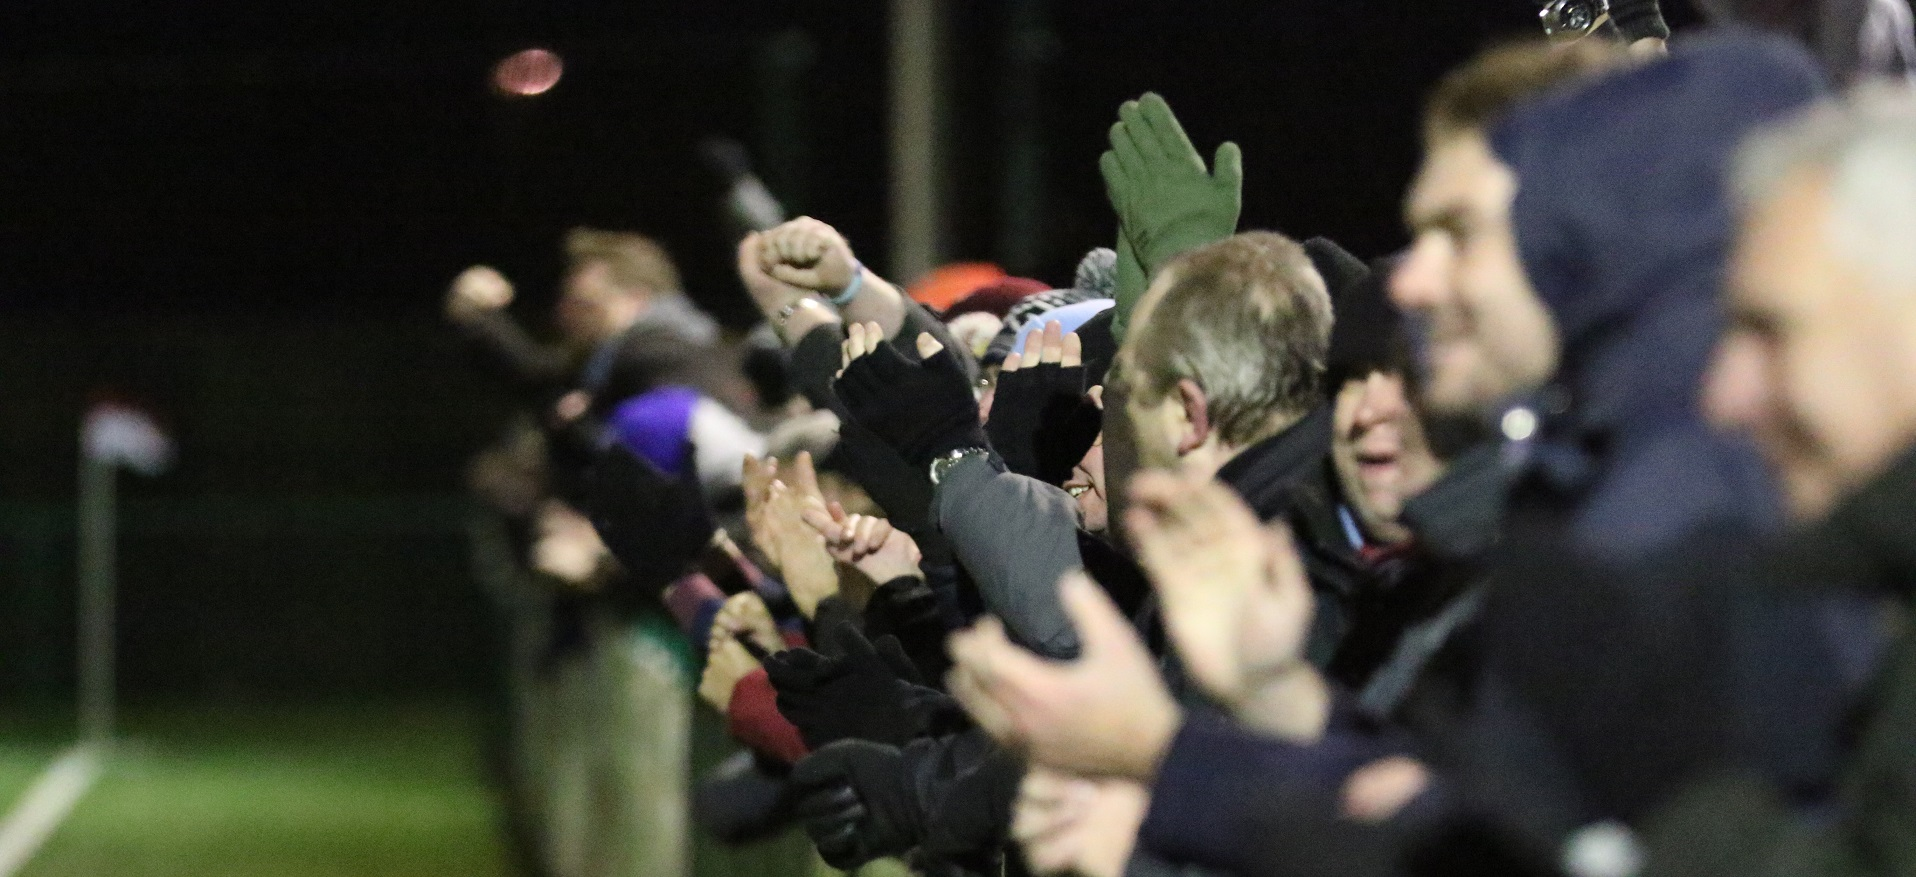 VIDEO: Captain Scroggins thrilled to celebrate Consett win with fans